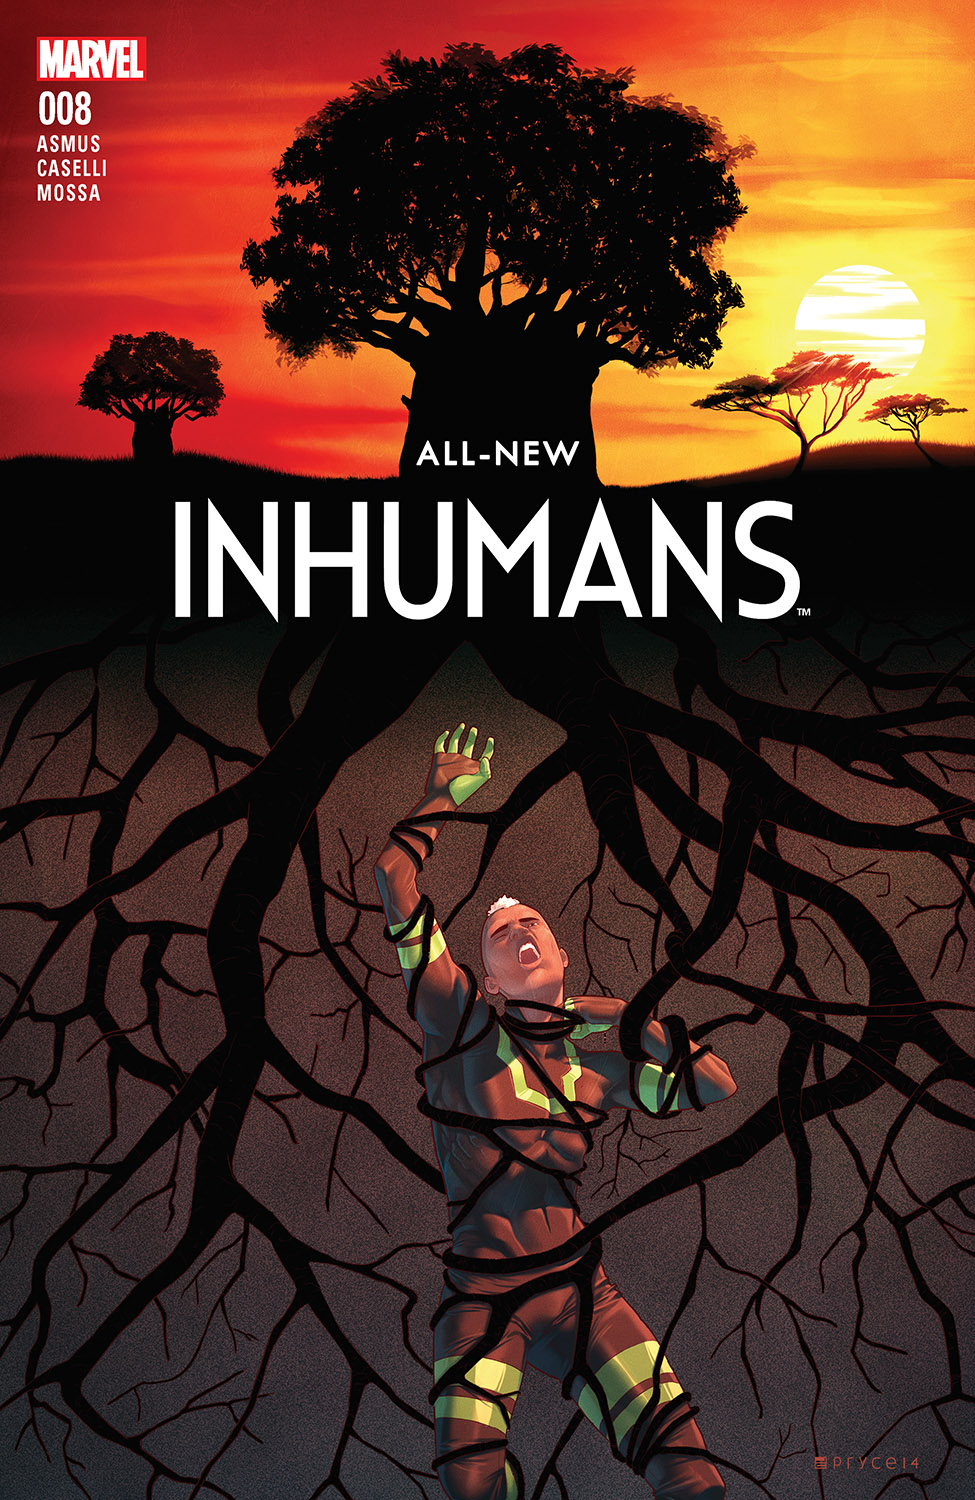 All-New Inhumans (2015) #8